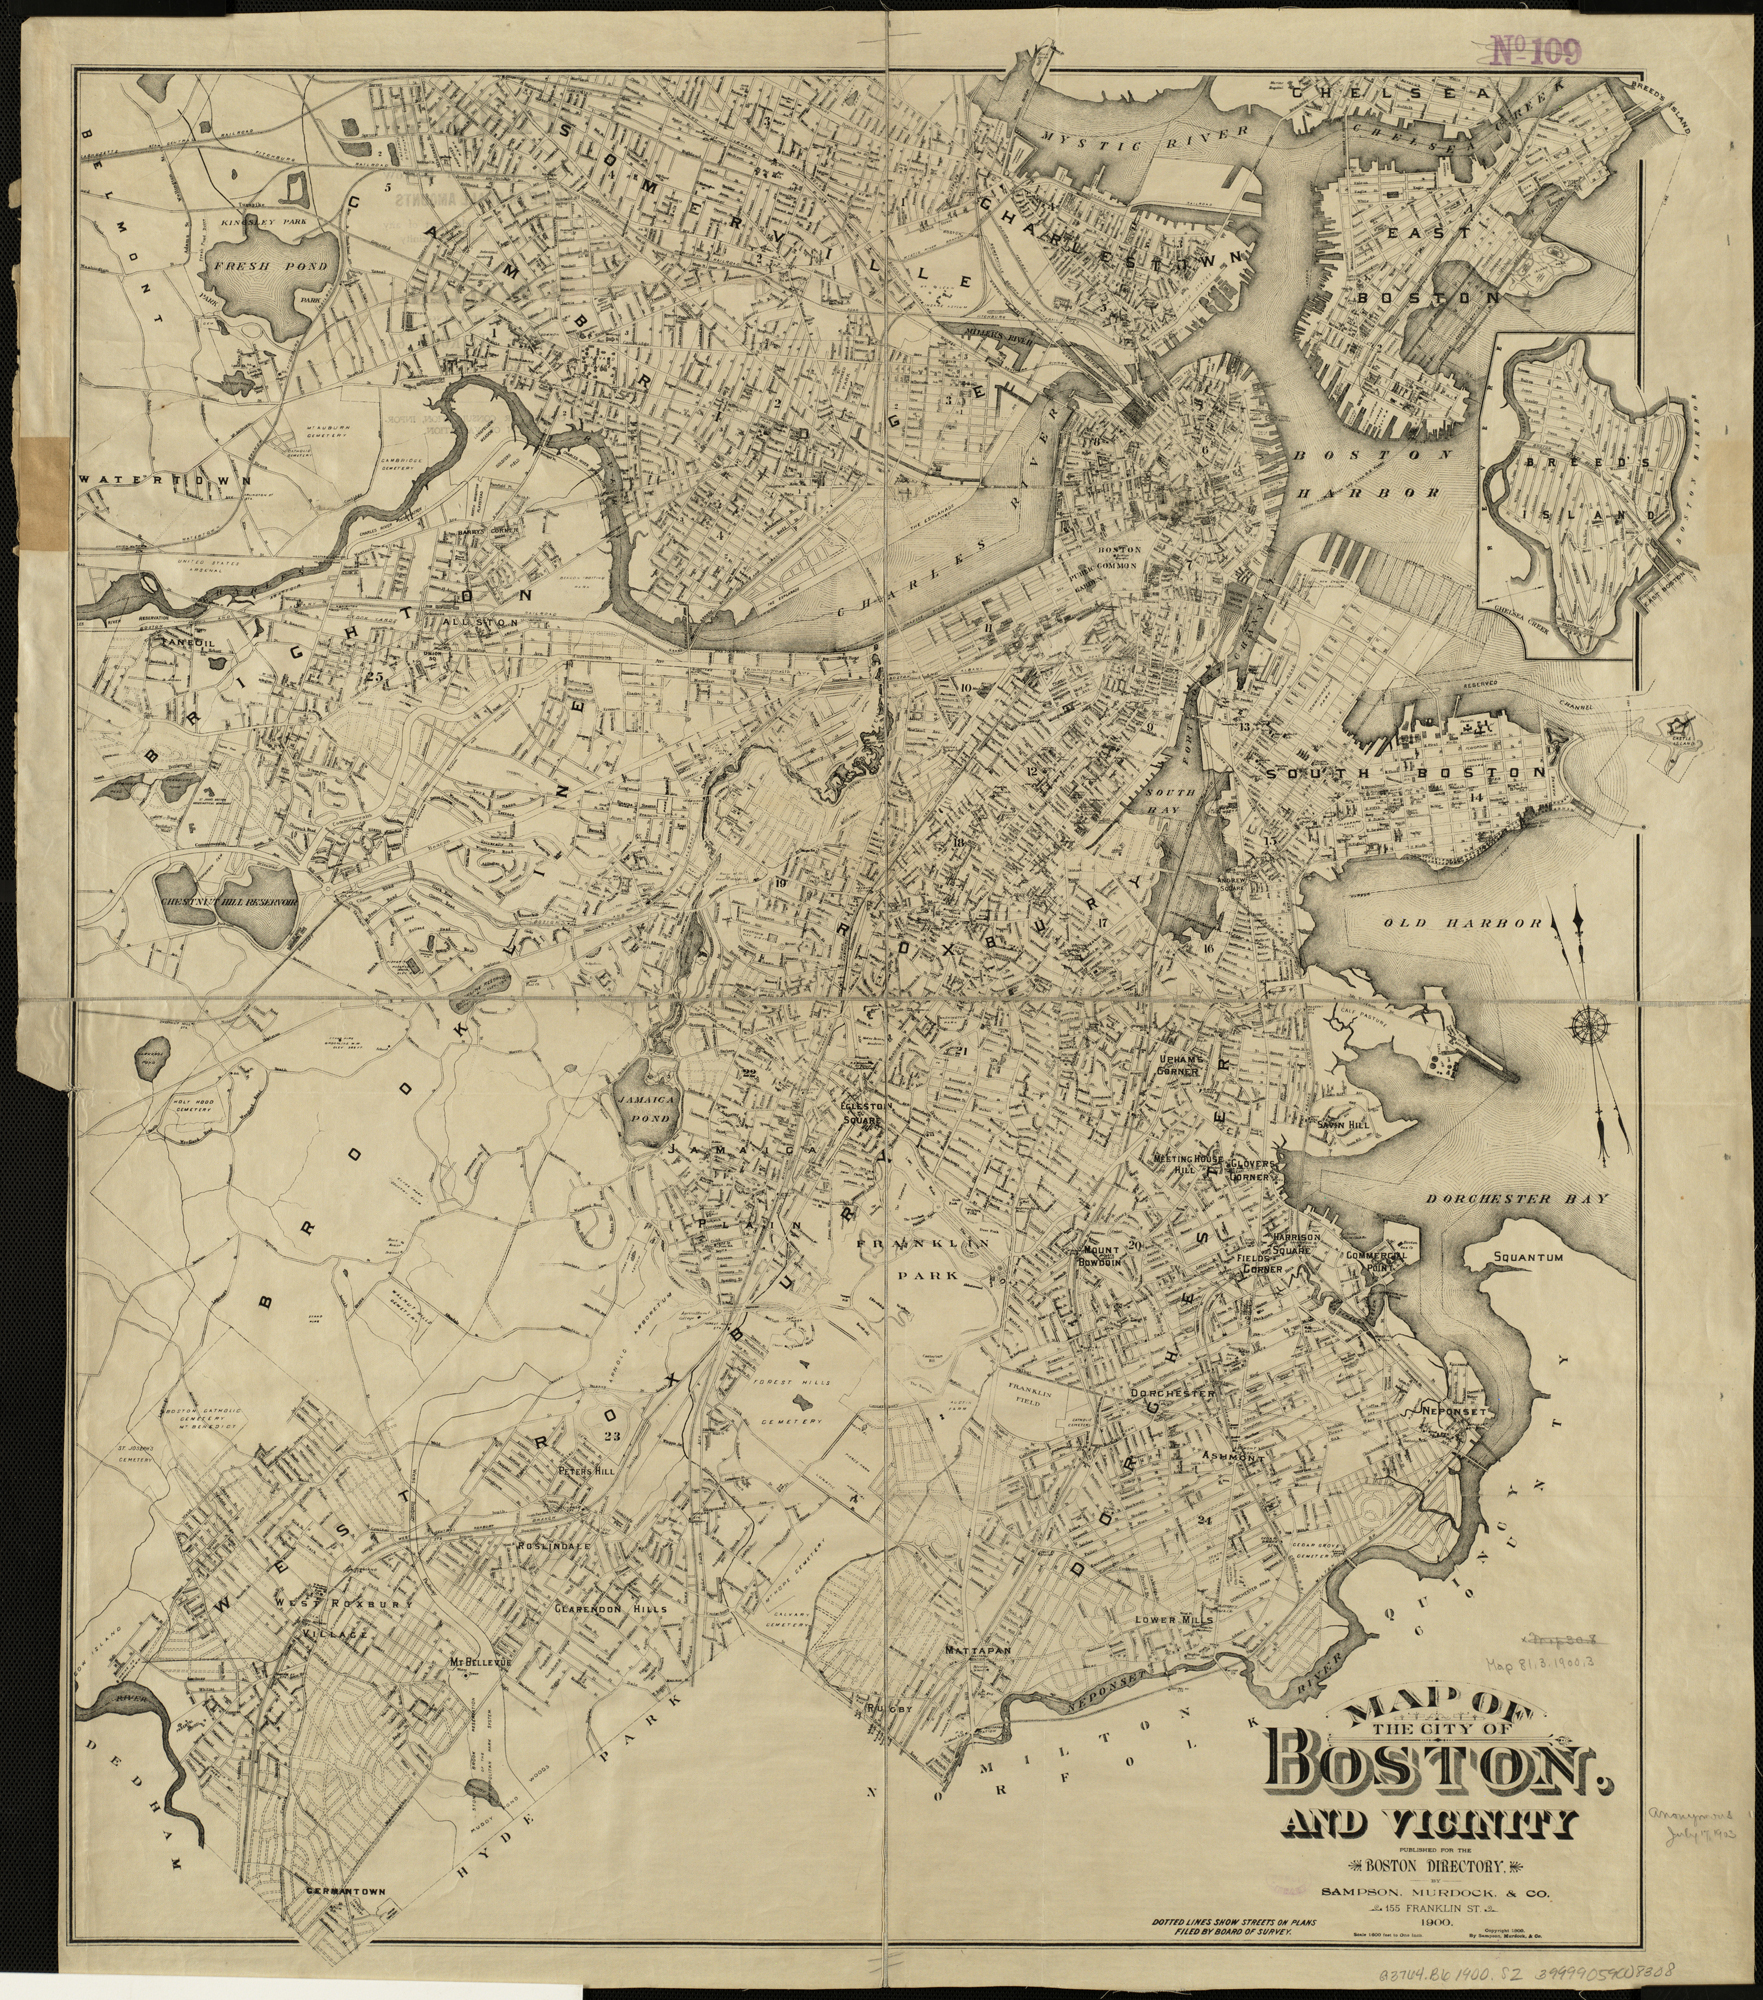 FileMap Of The City Of Boston And Vicinity Jpg - Map of boston vicinity